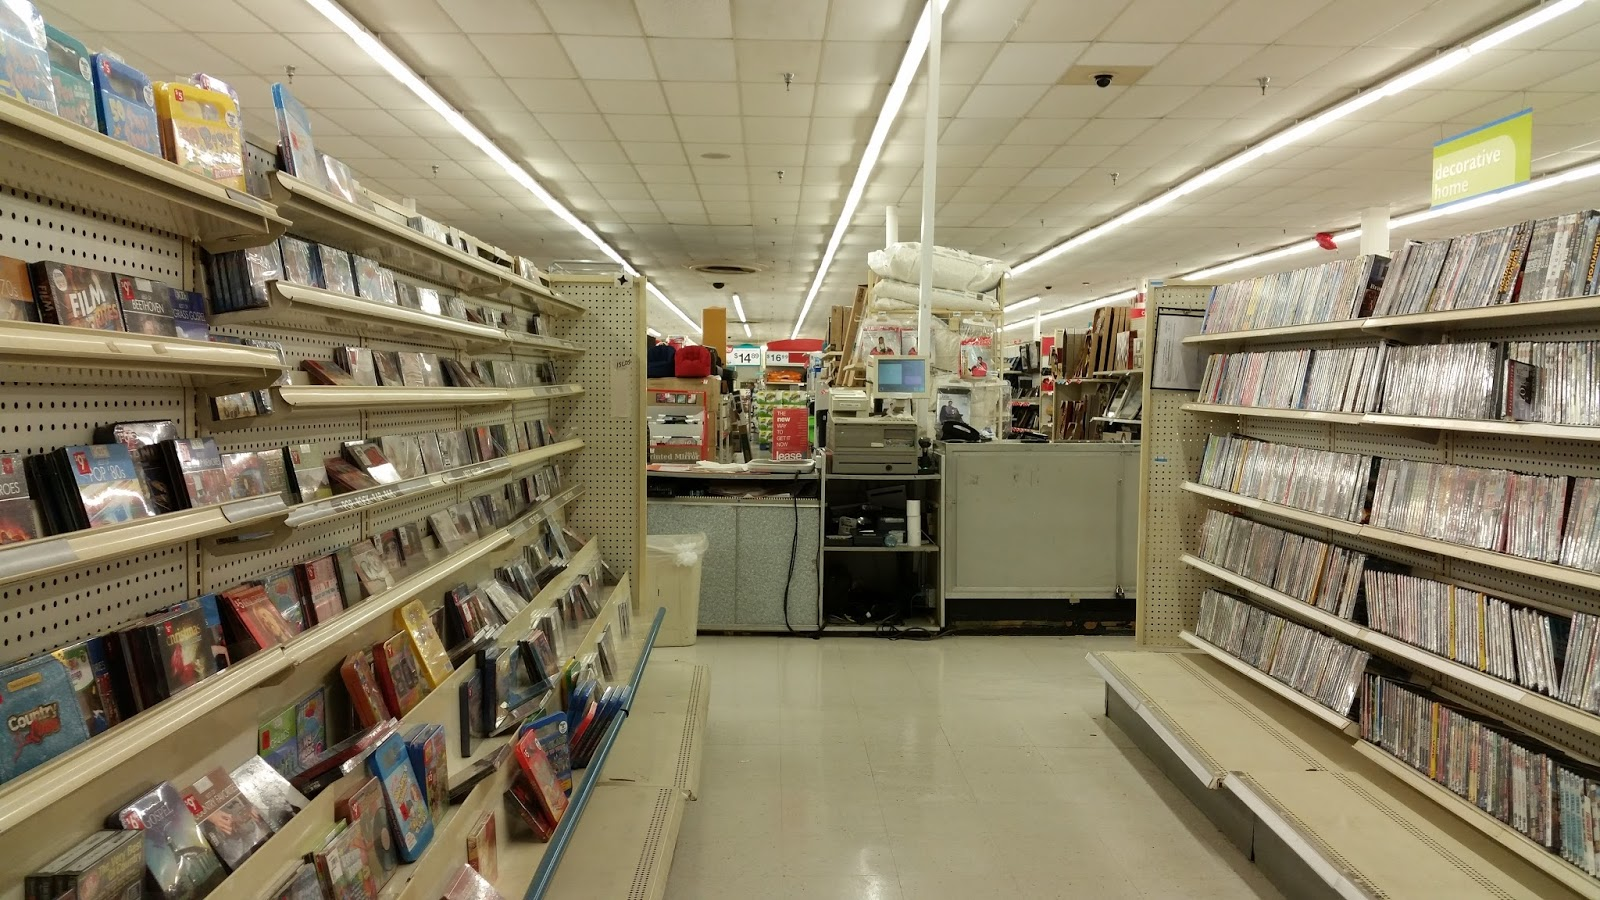 Here Is The First Aisle Of Music And Movies Which An Endangered Section In Kmart Stores